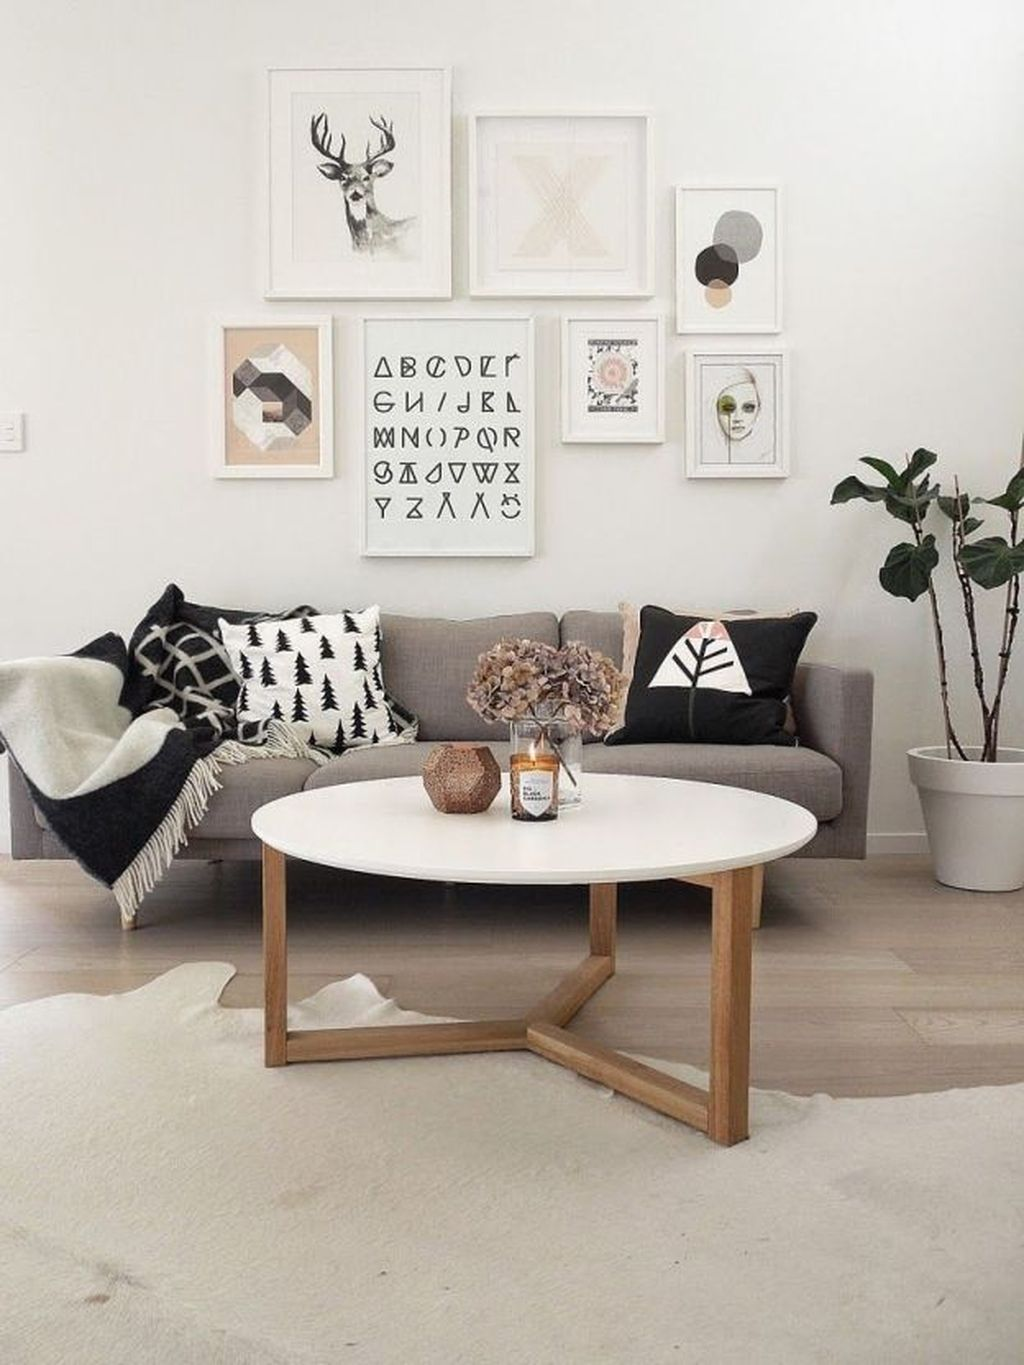 Amazing Scandinavian Living Room Decor Ideas 26